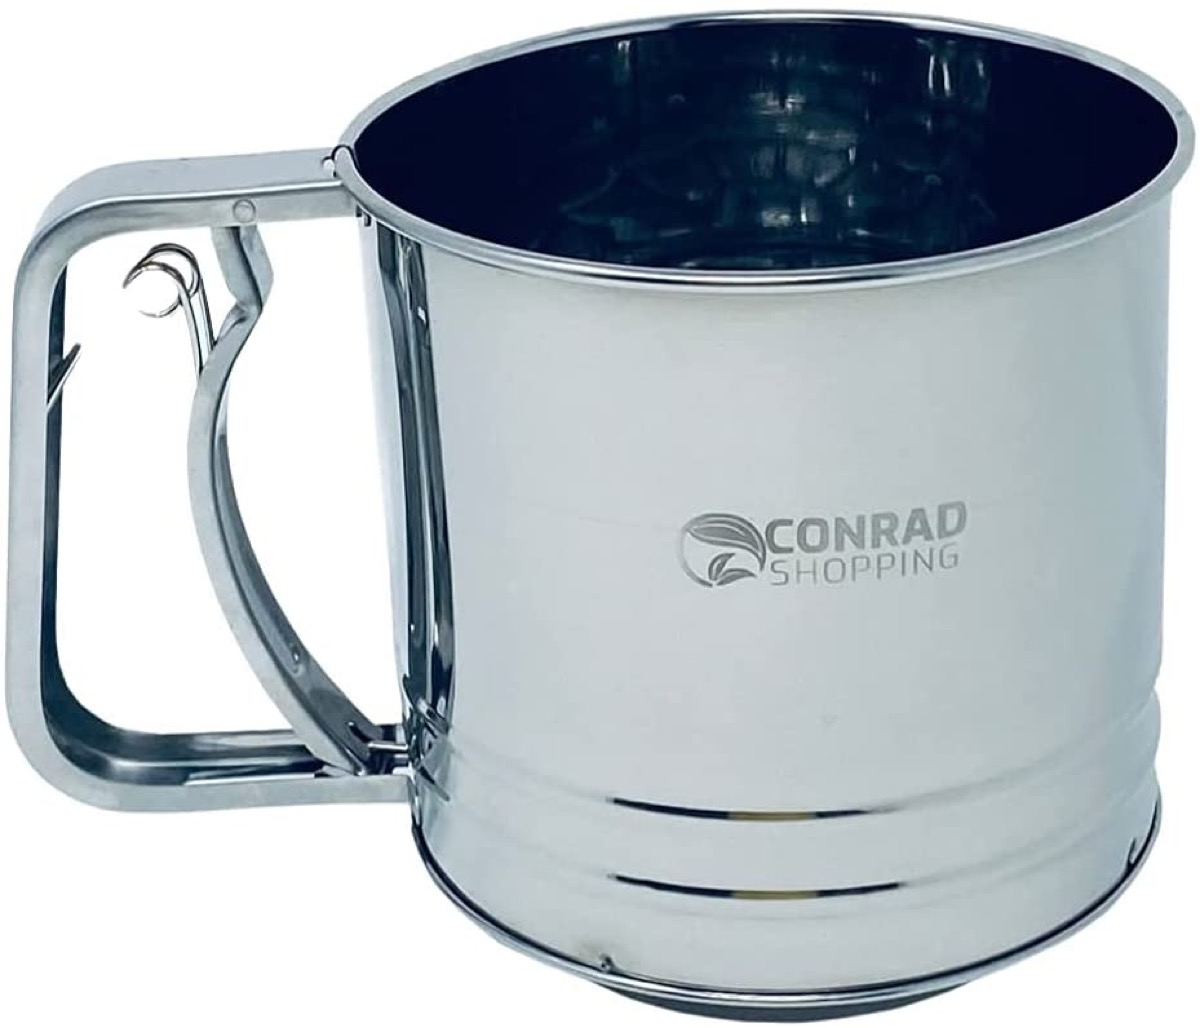 silver flour sifter on white background